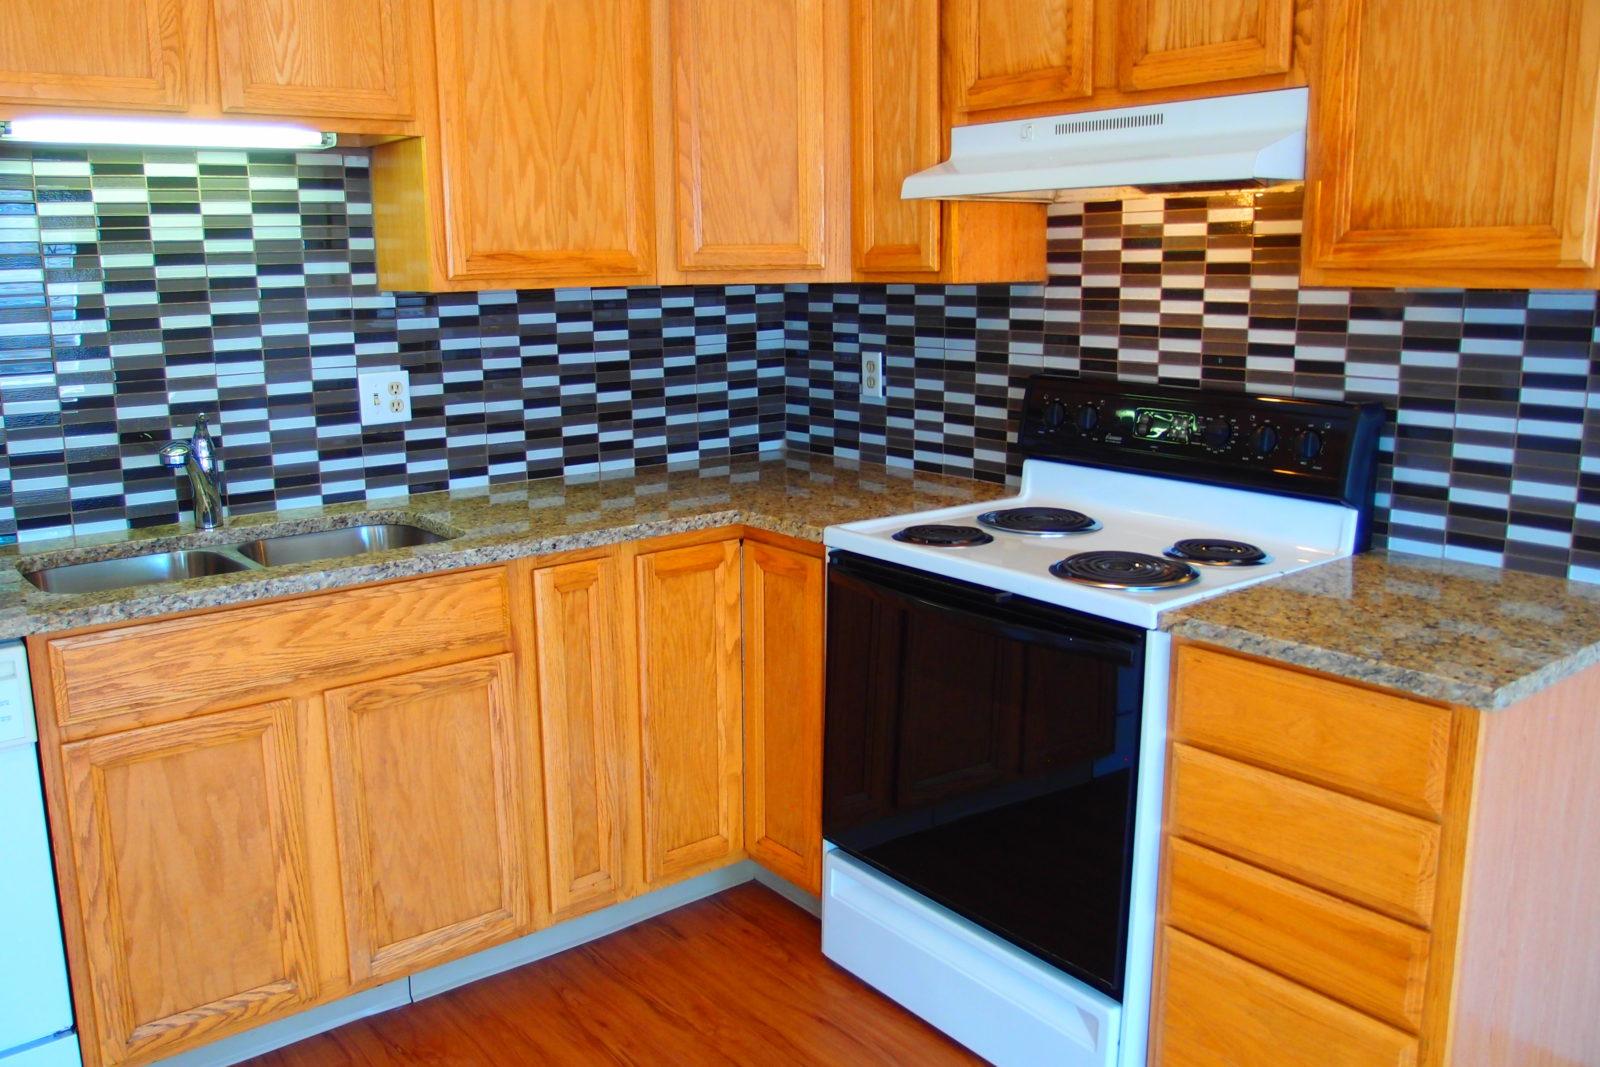 Granite Counter and Tile Backsplash